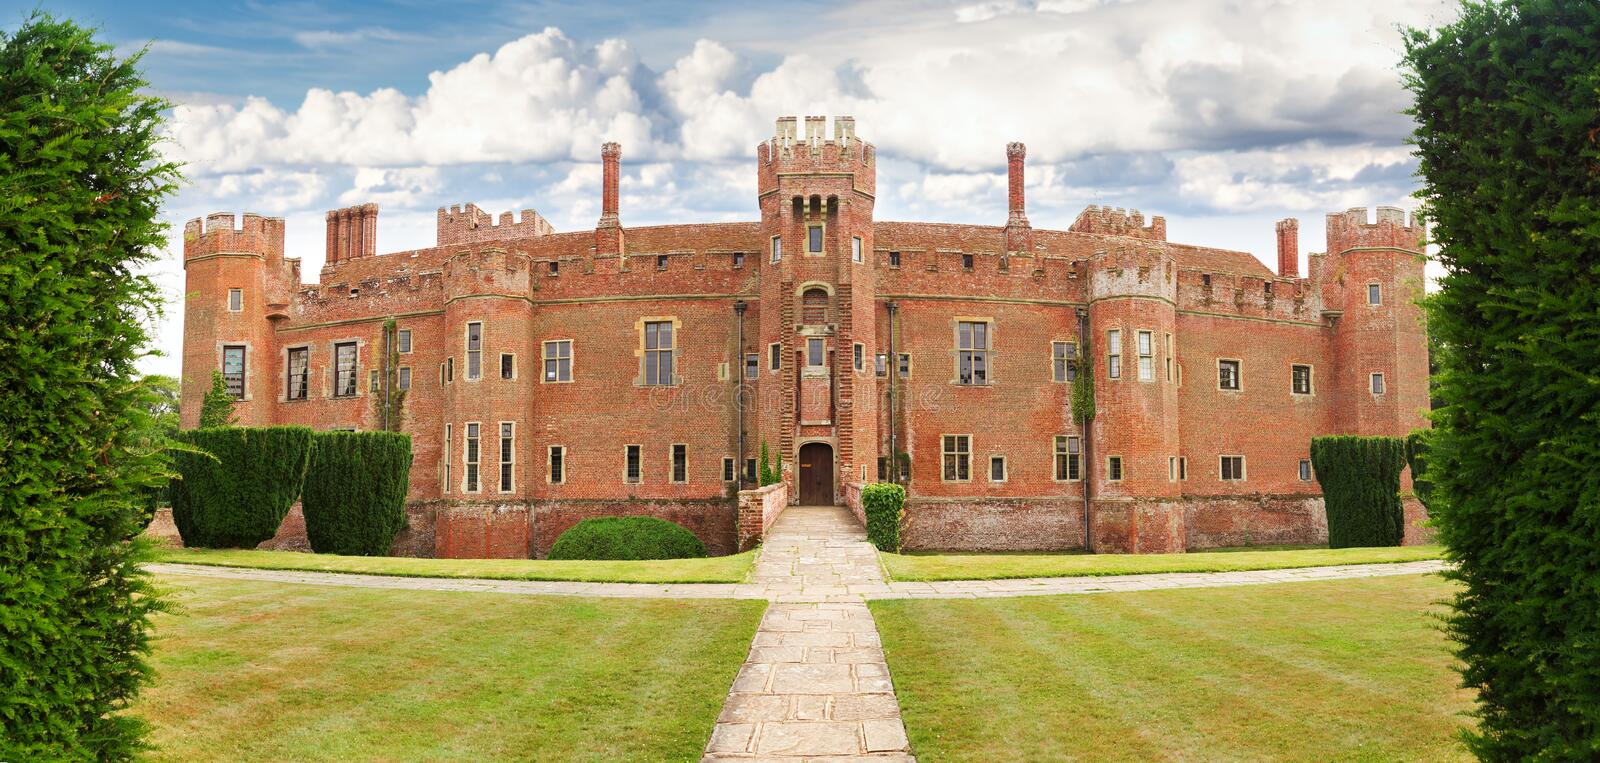 Brick Herstmonceux castle in England East Sussex. 15th century UK royalty free stock images